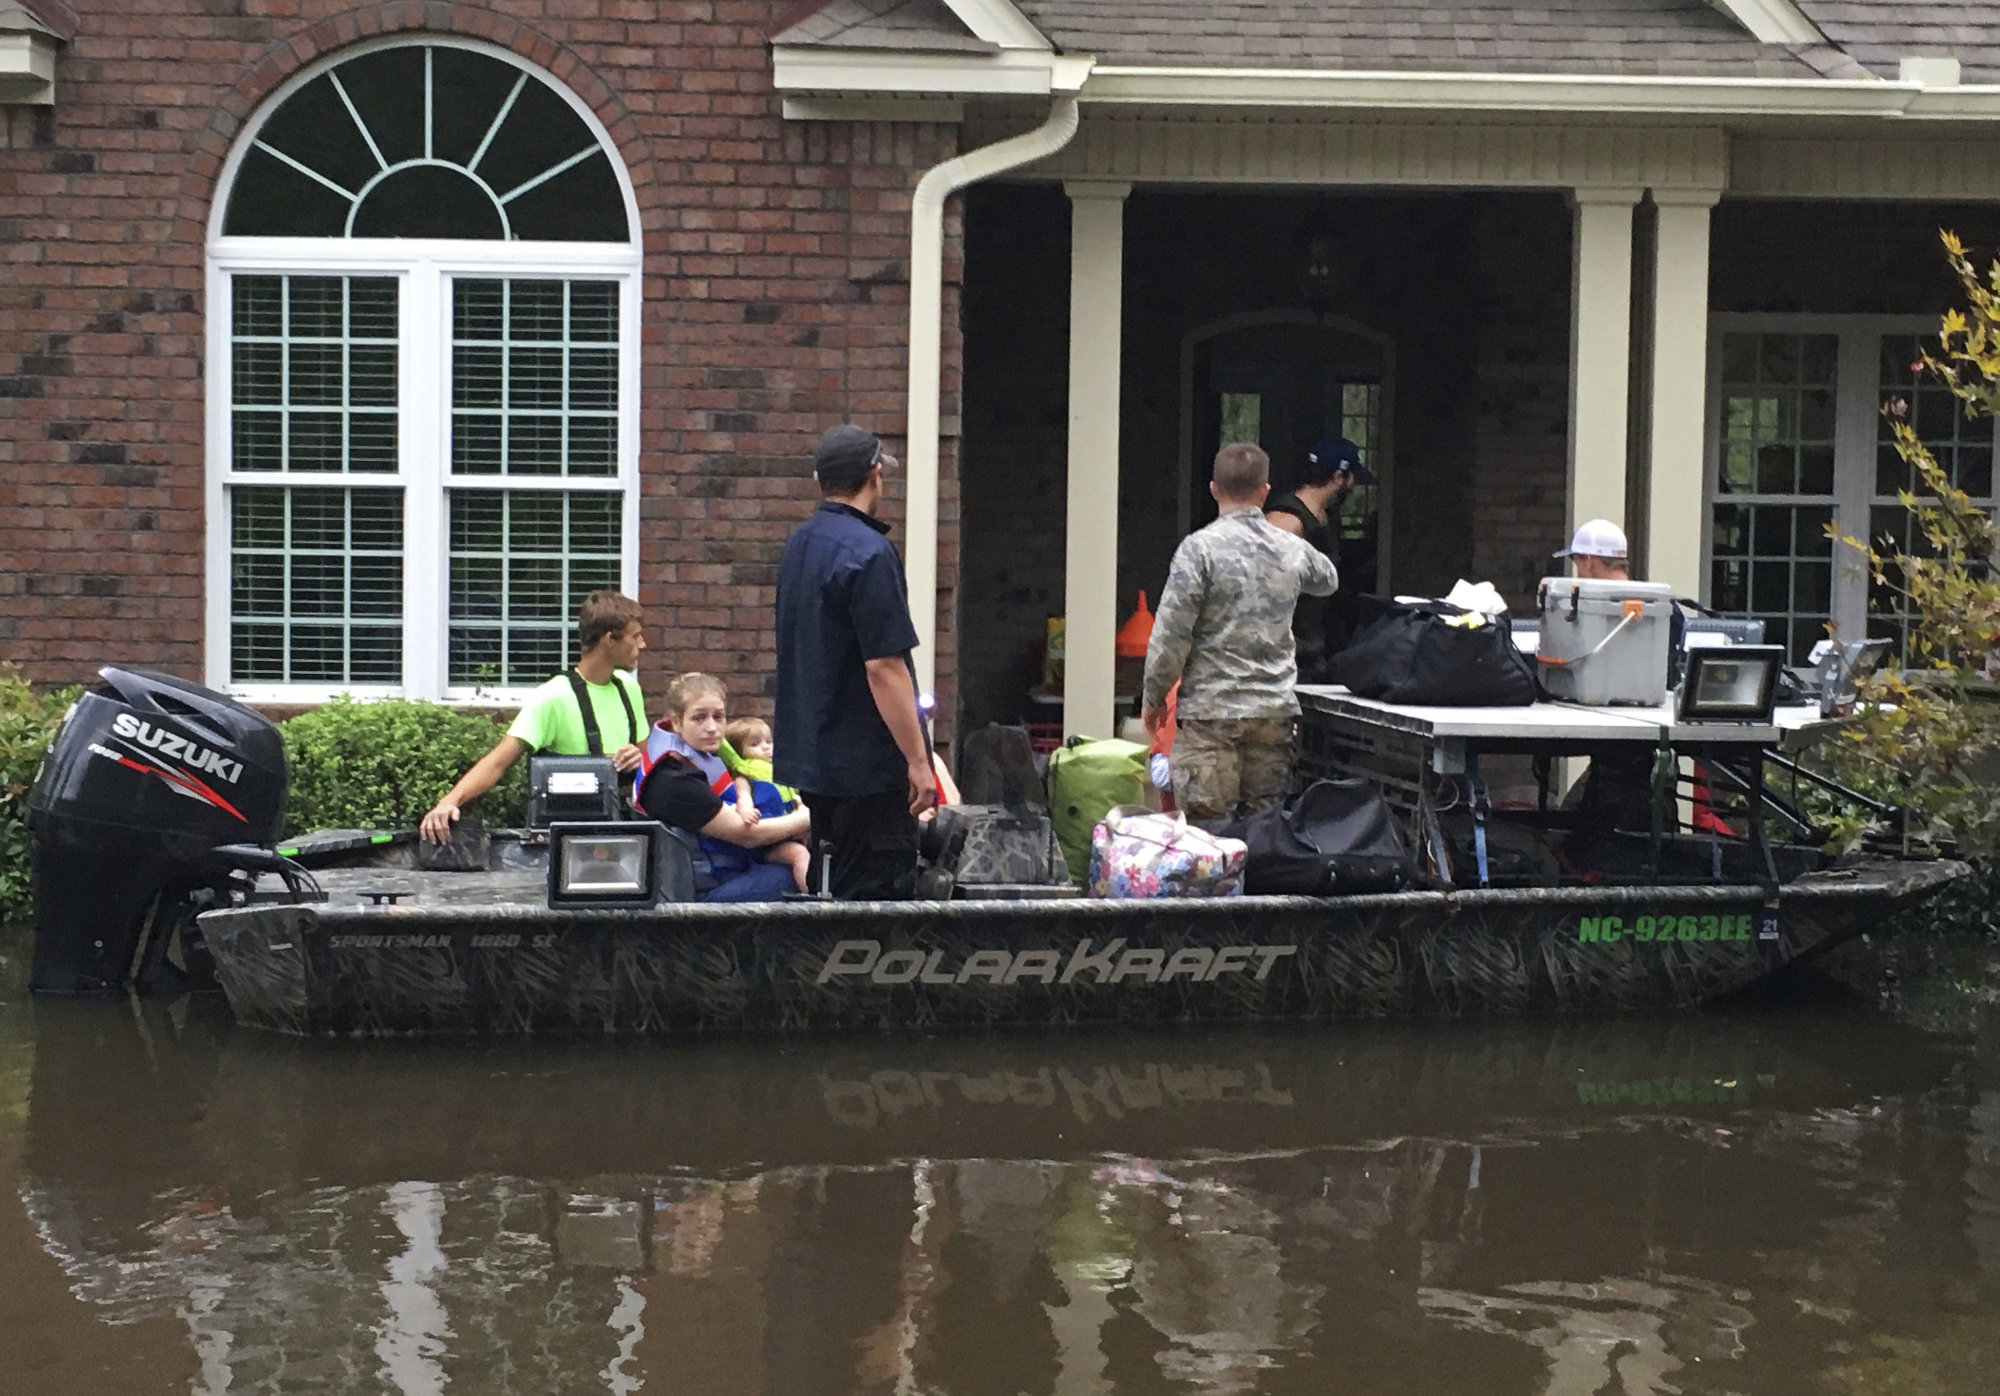 Authorities evacuate a family from rising waters caused by Florence, now a tropical storm, on Saturday, Sept. 15, 2018 in New Bern, N.C.  (AP Photo/Allen G. Breed)